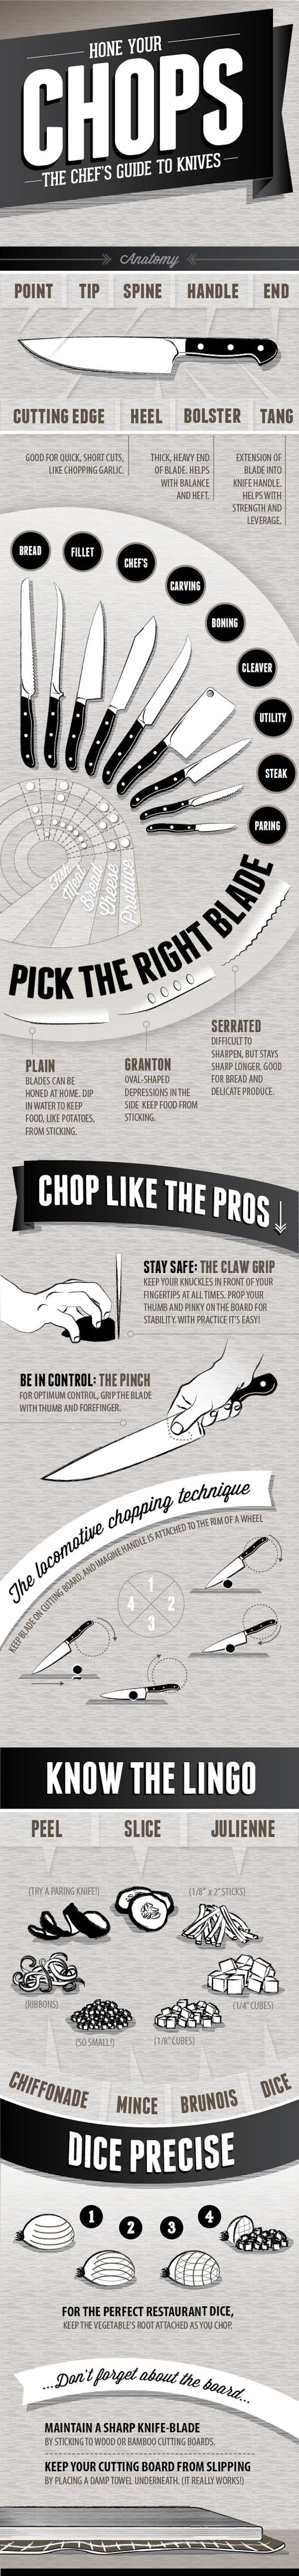 Know how to use your knives...I am so glad I have had chef training.  Doesn't mean I get careless and sometimes don't rock the blade or use an inappropriate knife.  I paid for it a few years ago and really cut my hand badly.  KNOW YOUR KNIVES!  And keep them sharpened...a dull knife is very dangerous.